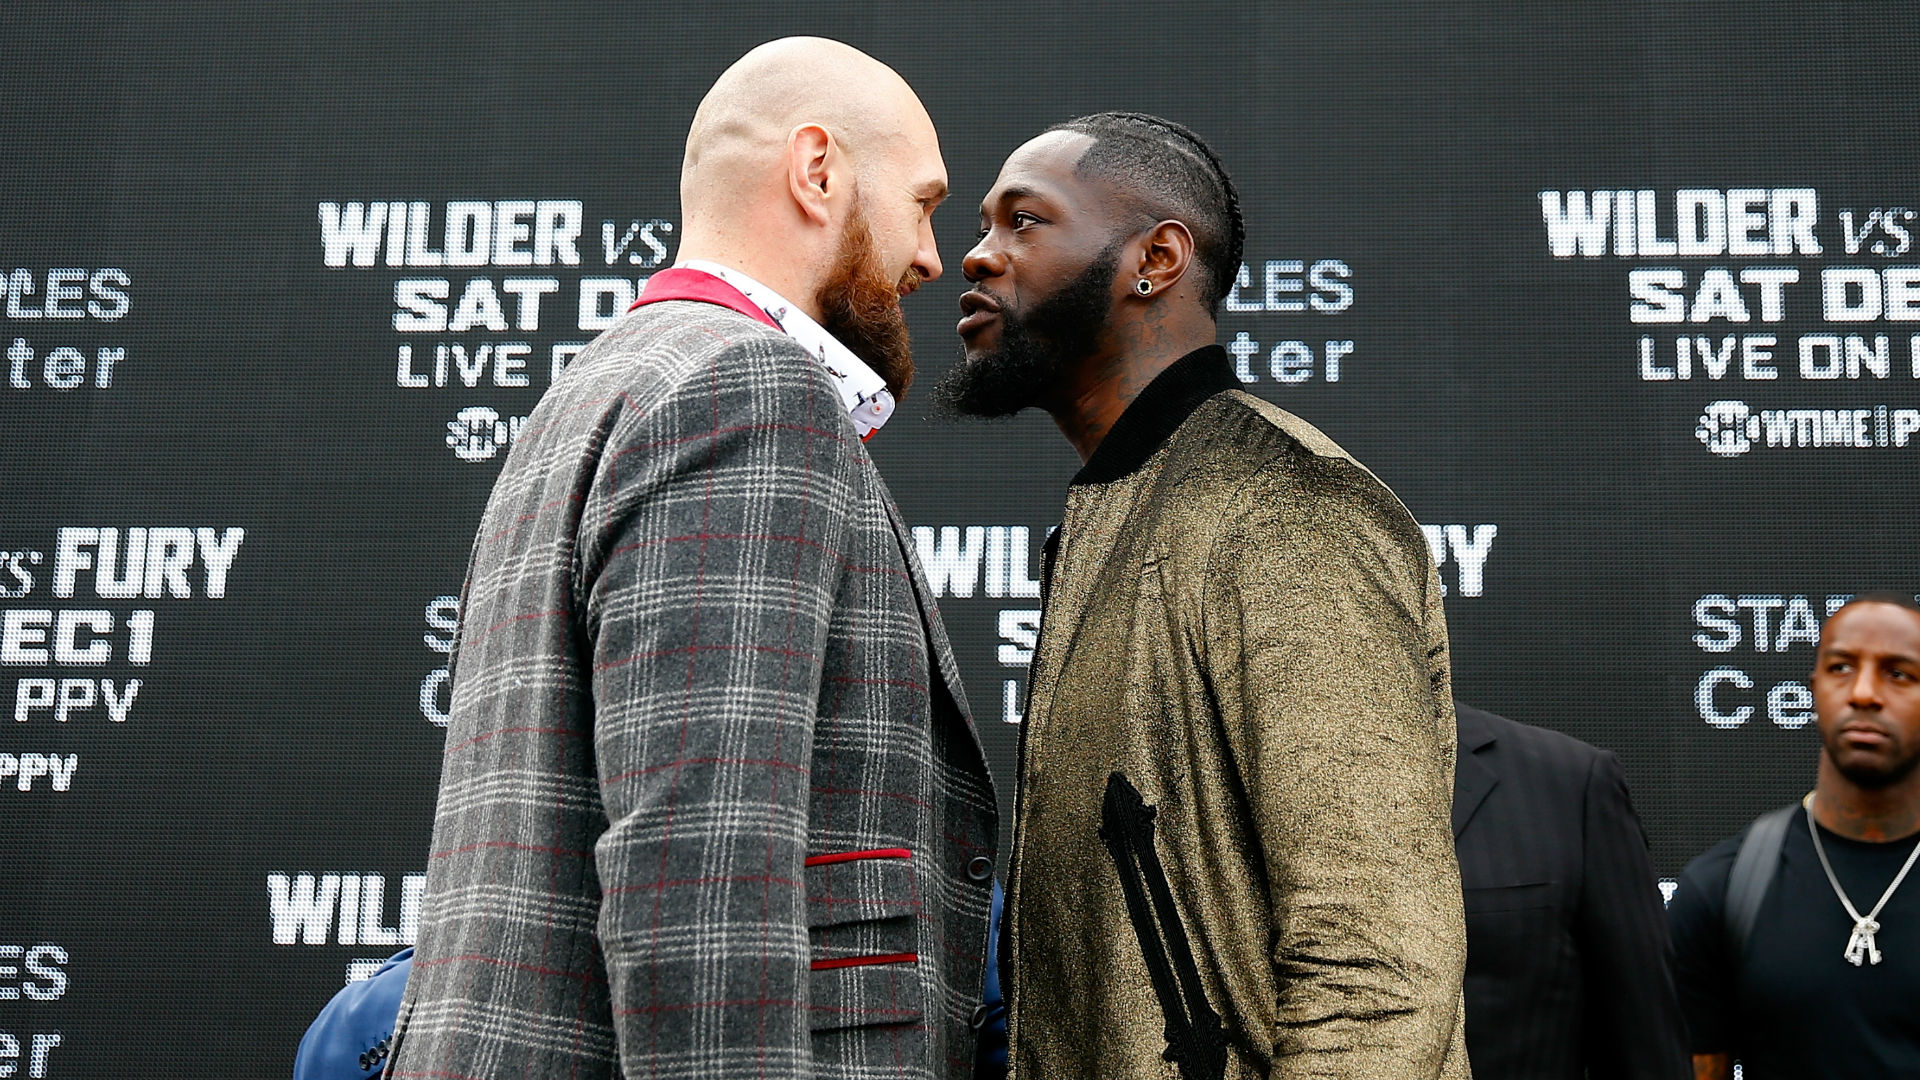 A Wrestling Fan's Guide To Deontay Wilder vs Tyson Fury